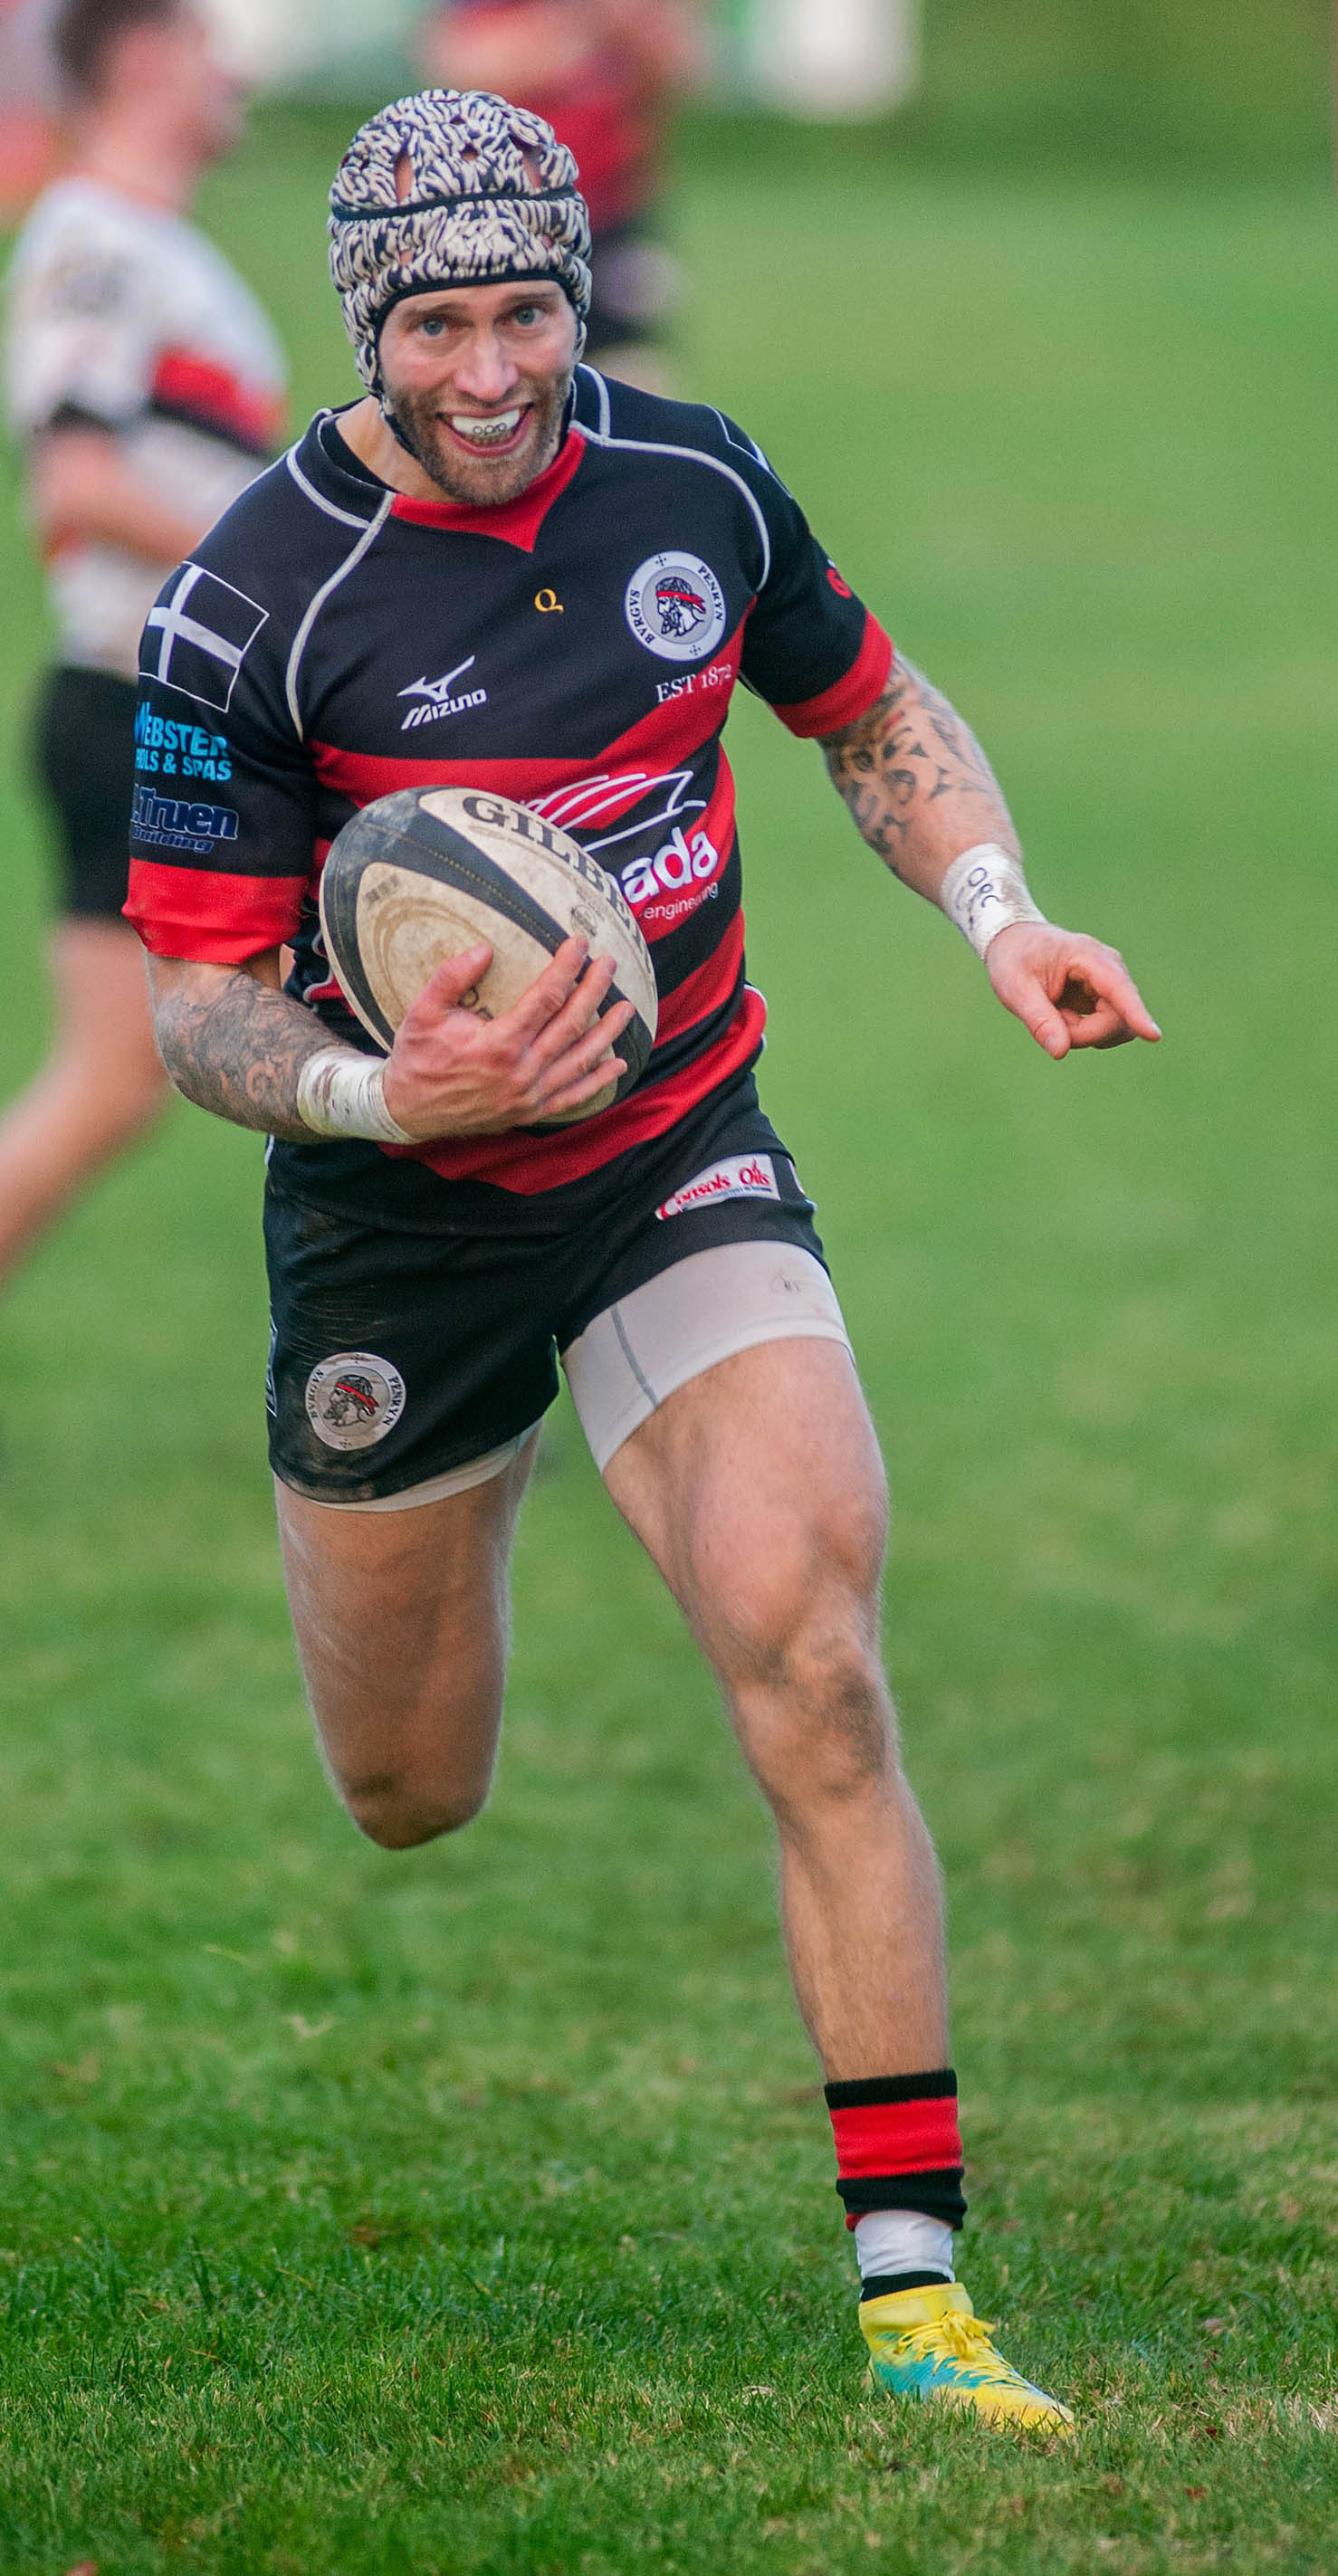 Penryn's Josh Chambers scored a third consecutive hat-trick in his side's 46-19 win at home to Tavistock on Saturday. Picture by Colin Higgs